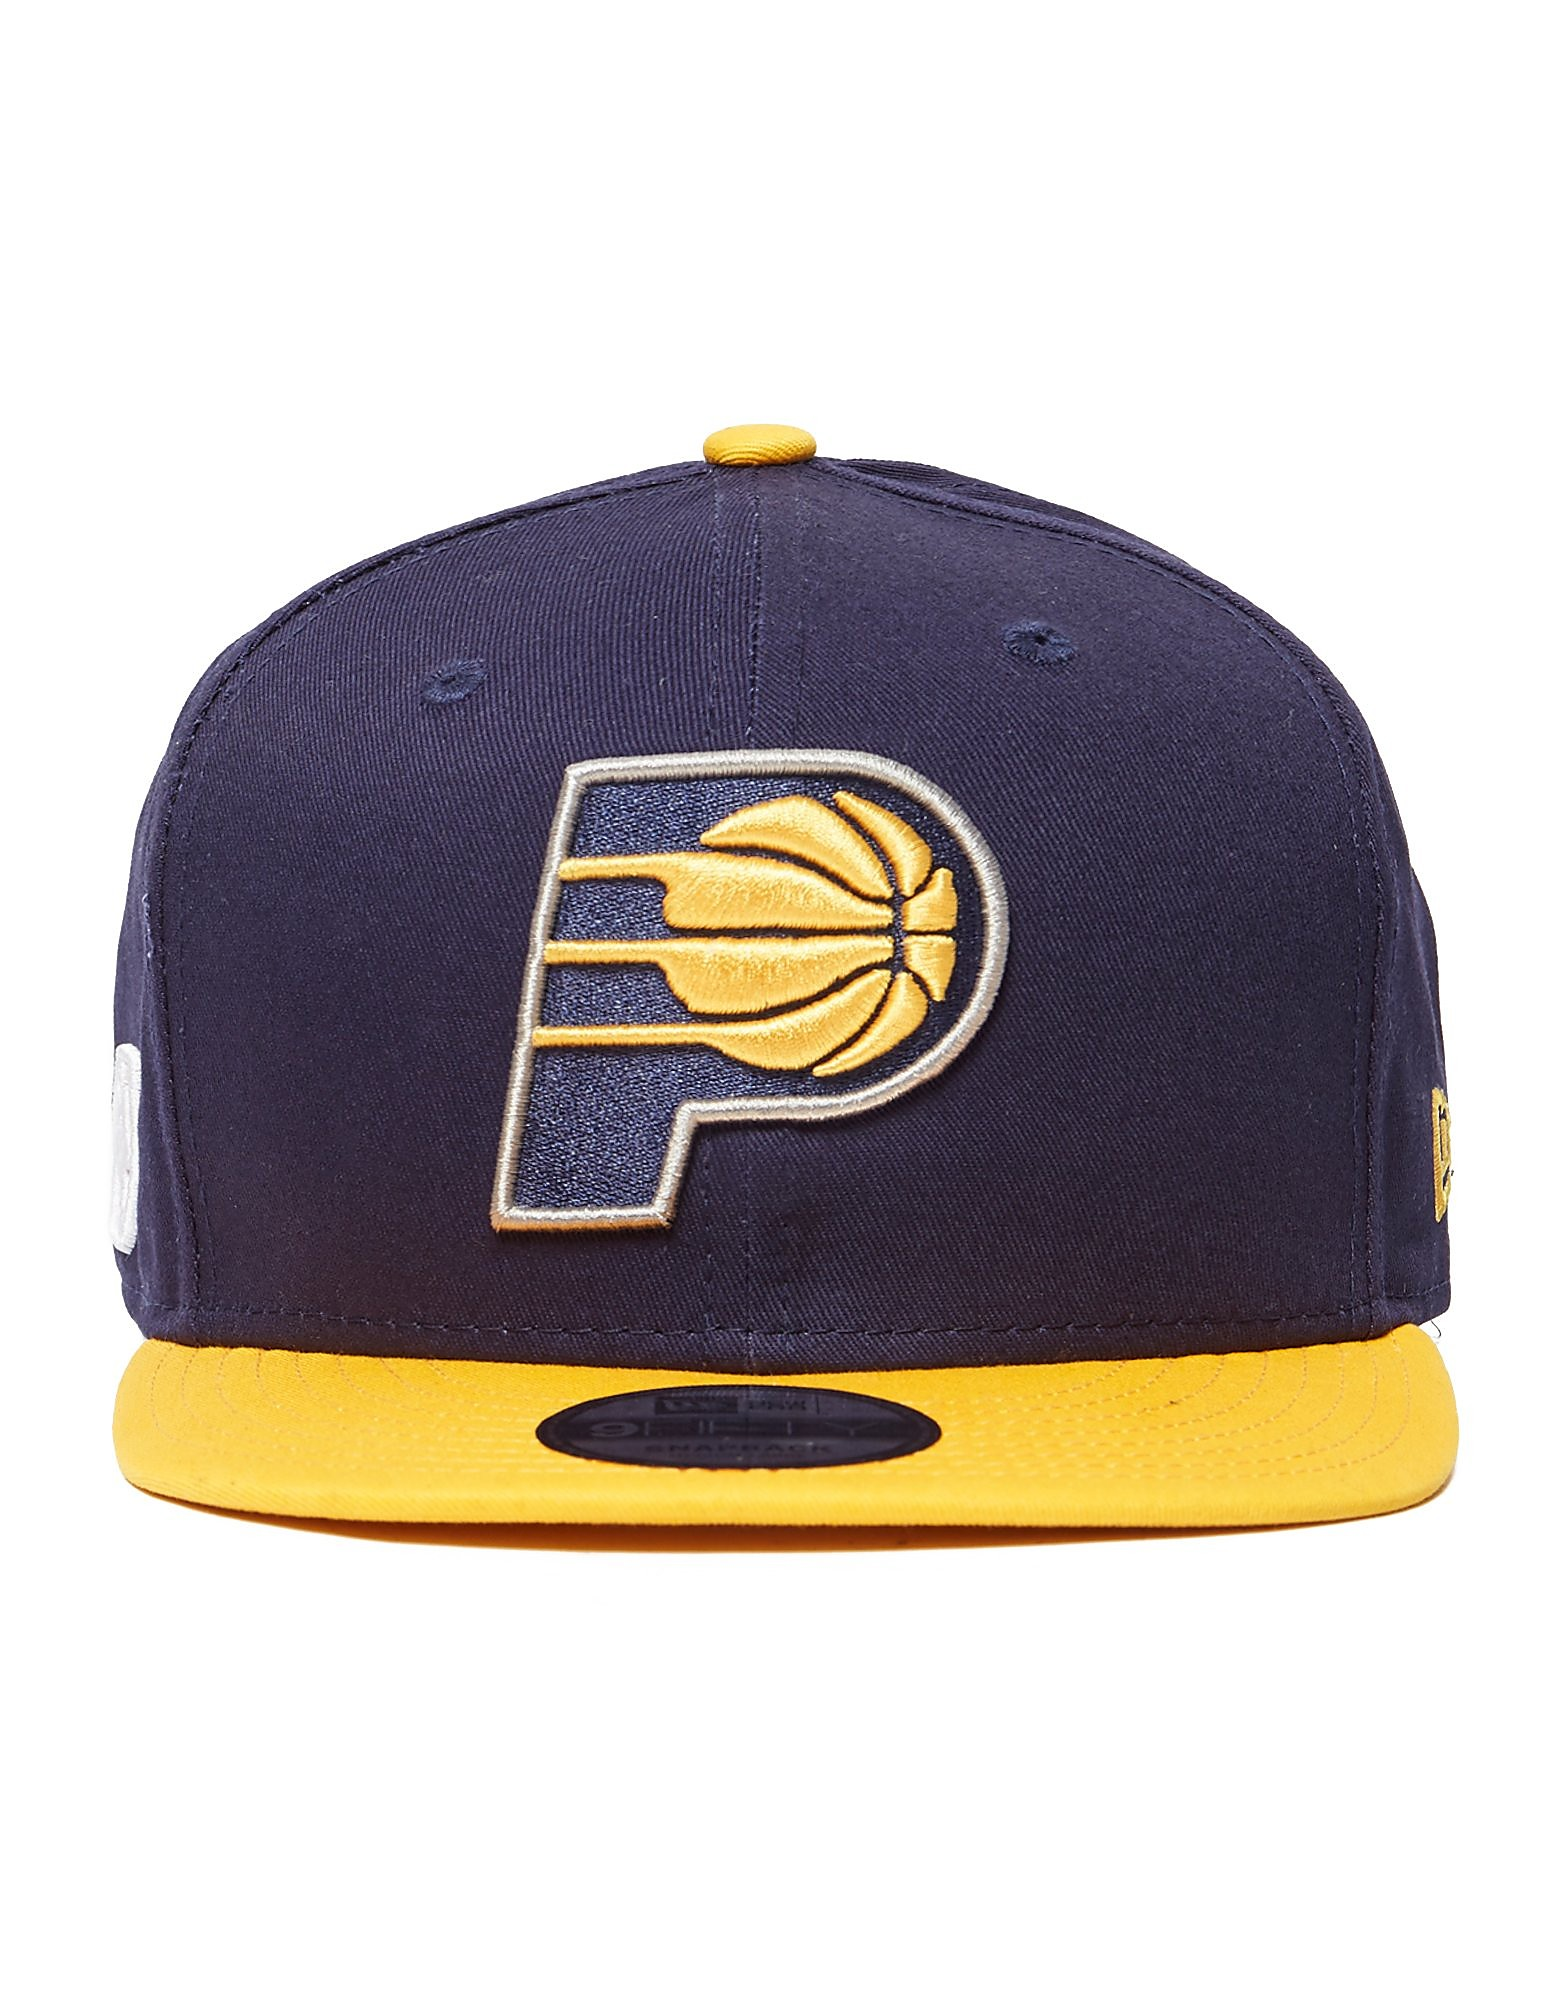 New Era NBA Indiana Pacers 9FIFTY Snapback Cap